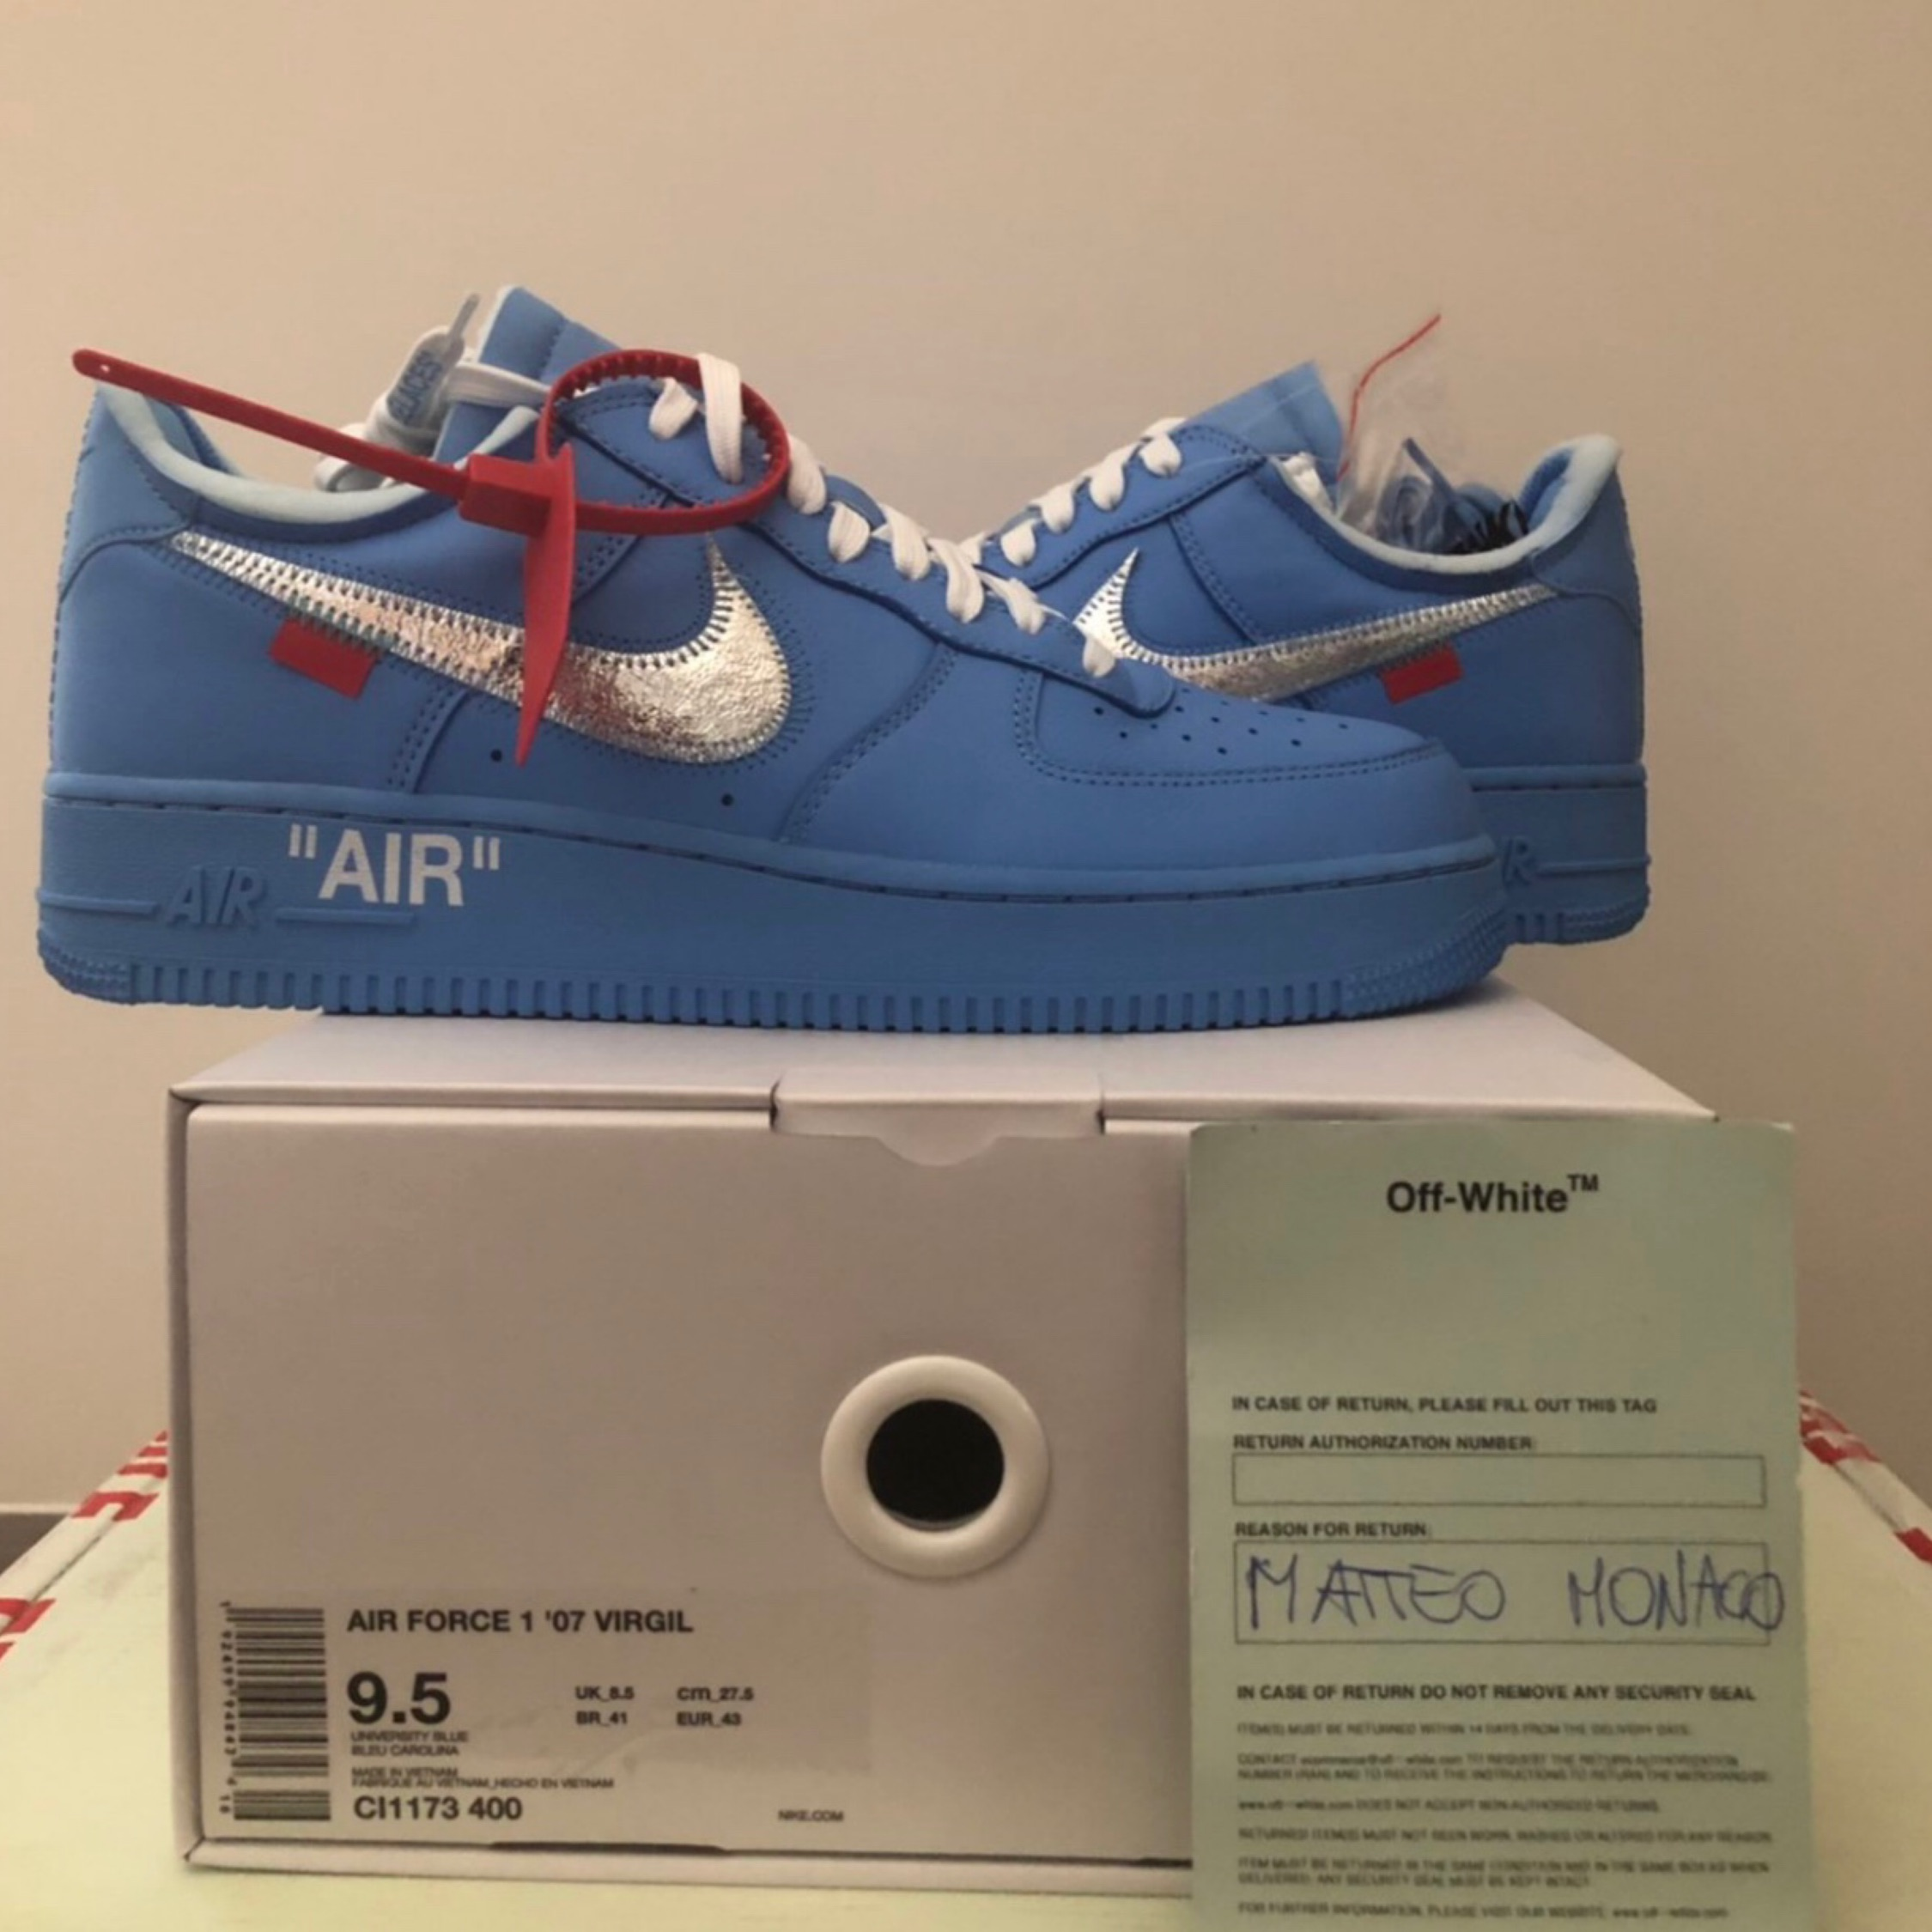 Air Force One X Off White Mca